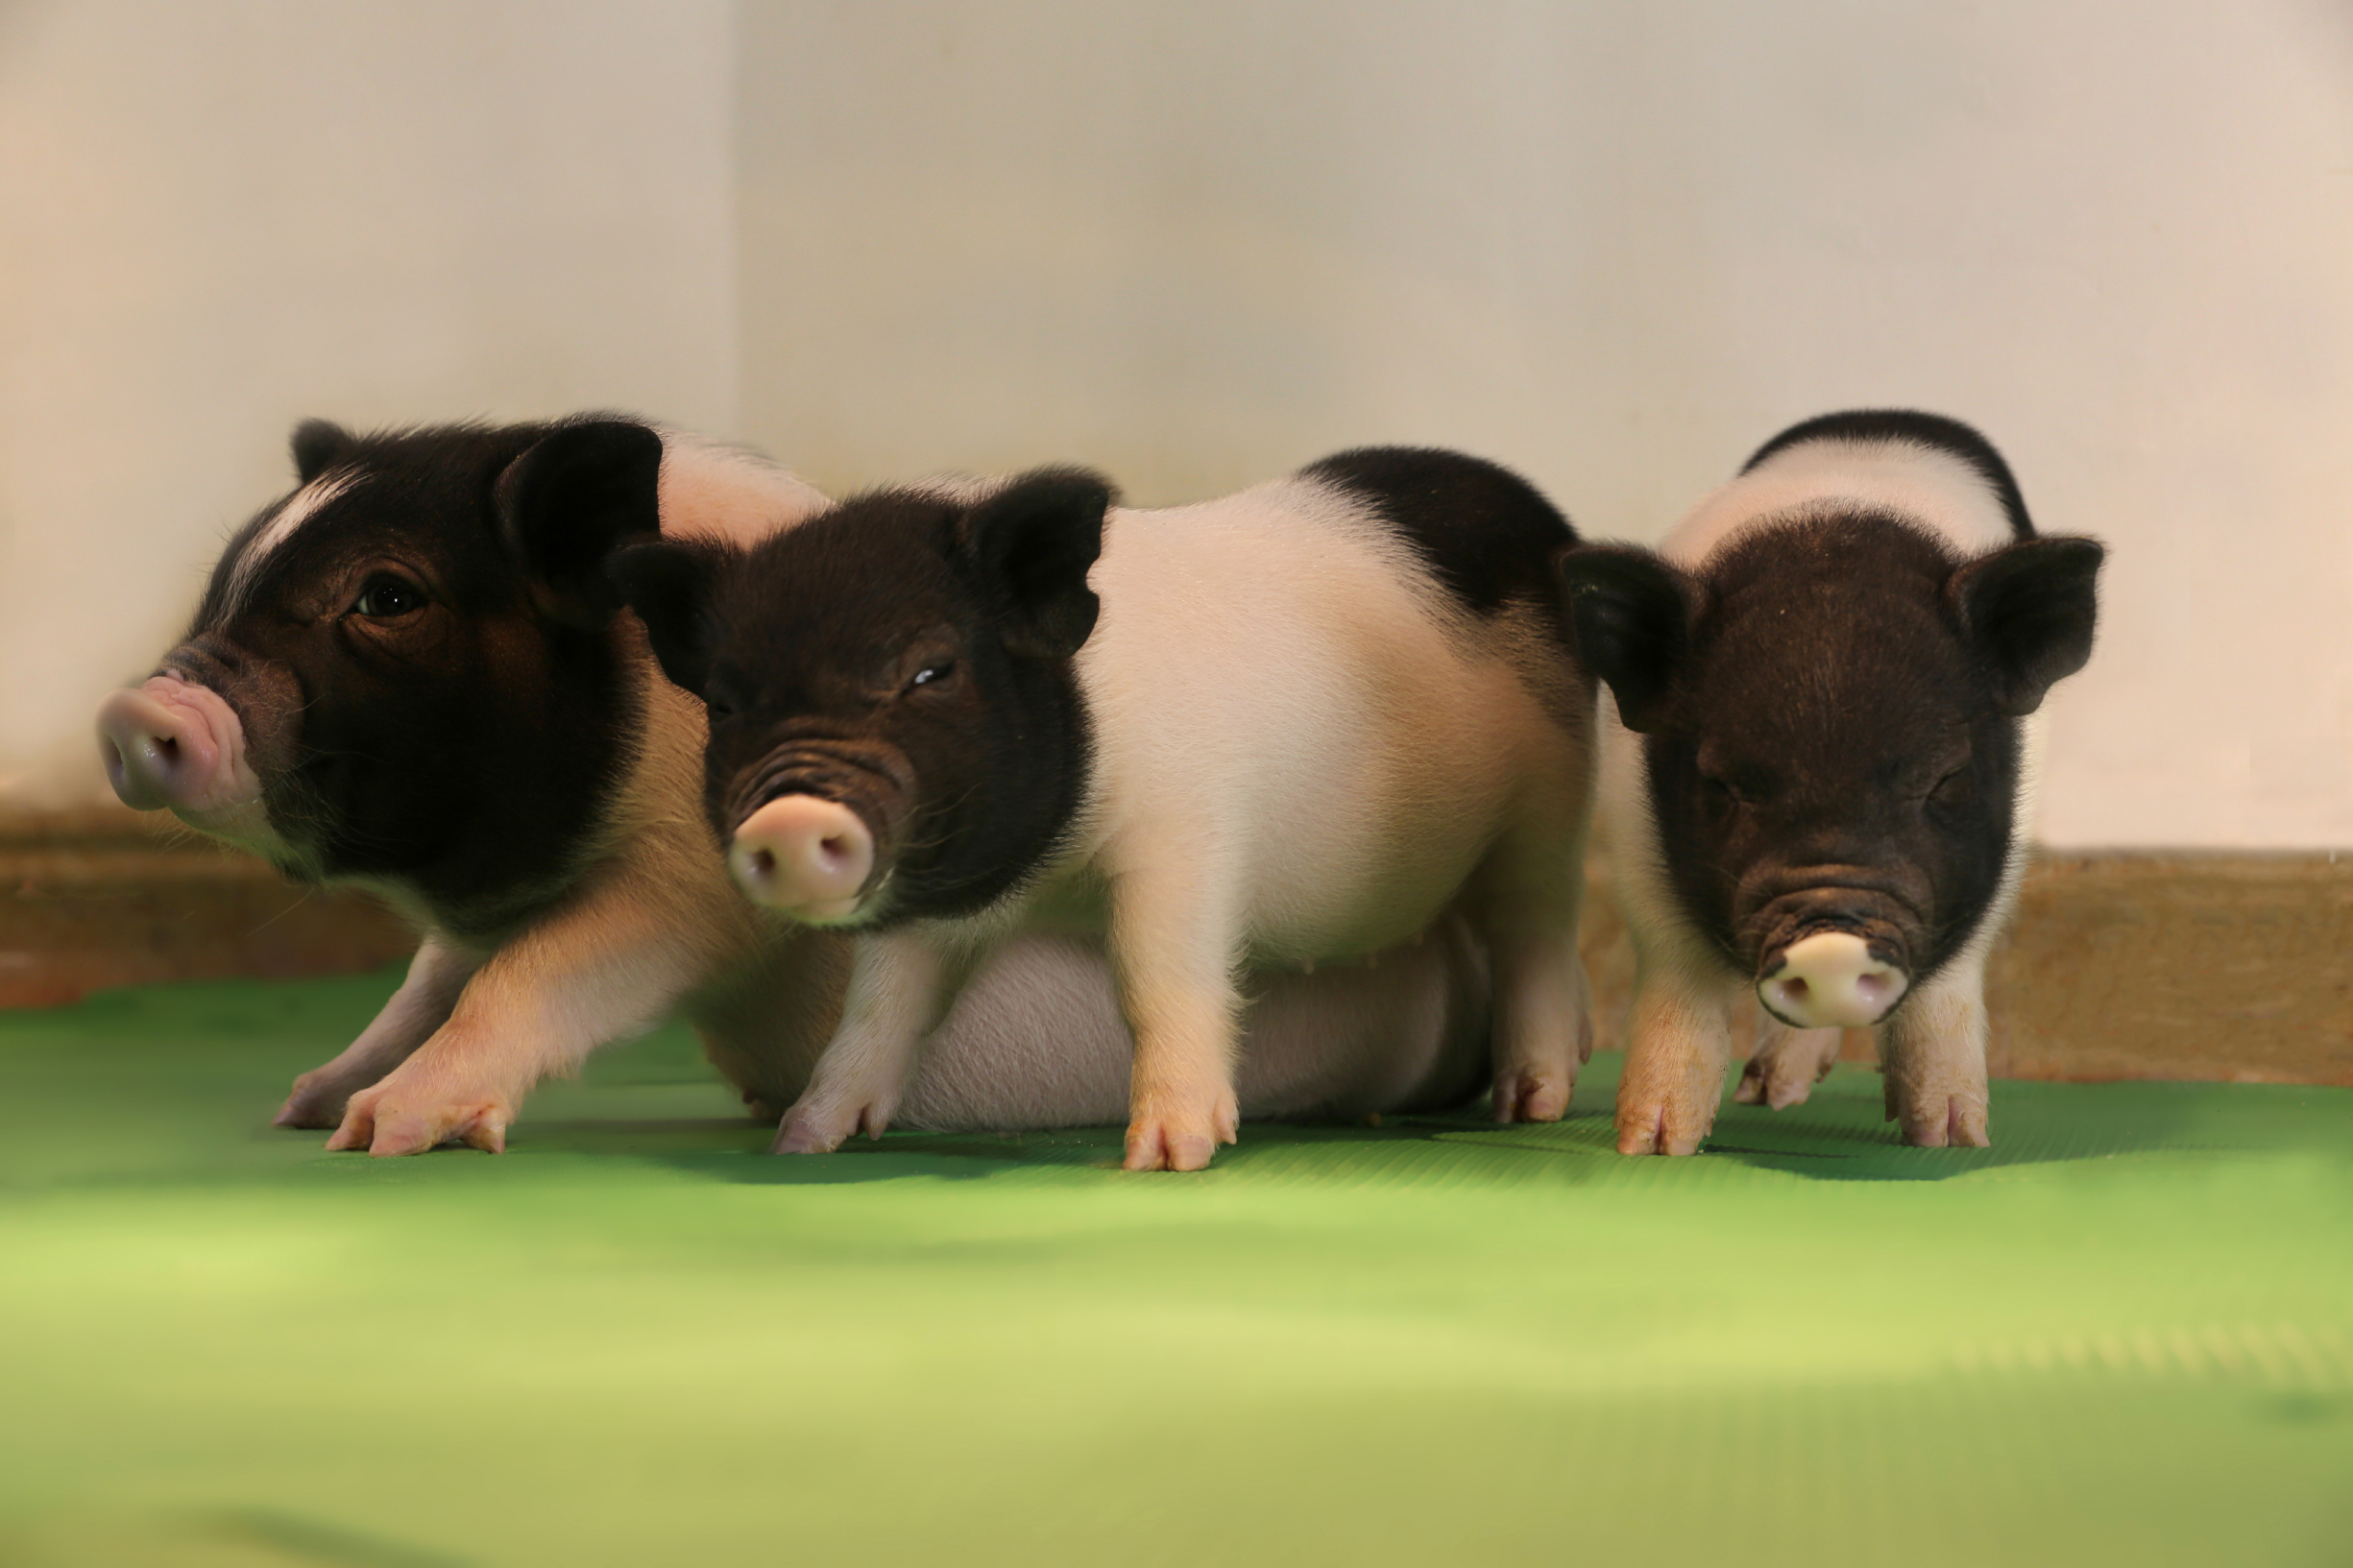 These baby pigs were the first to be born without innate viruses in their DNA.